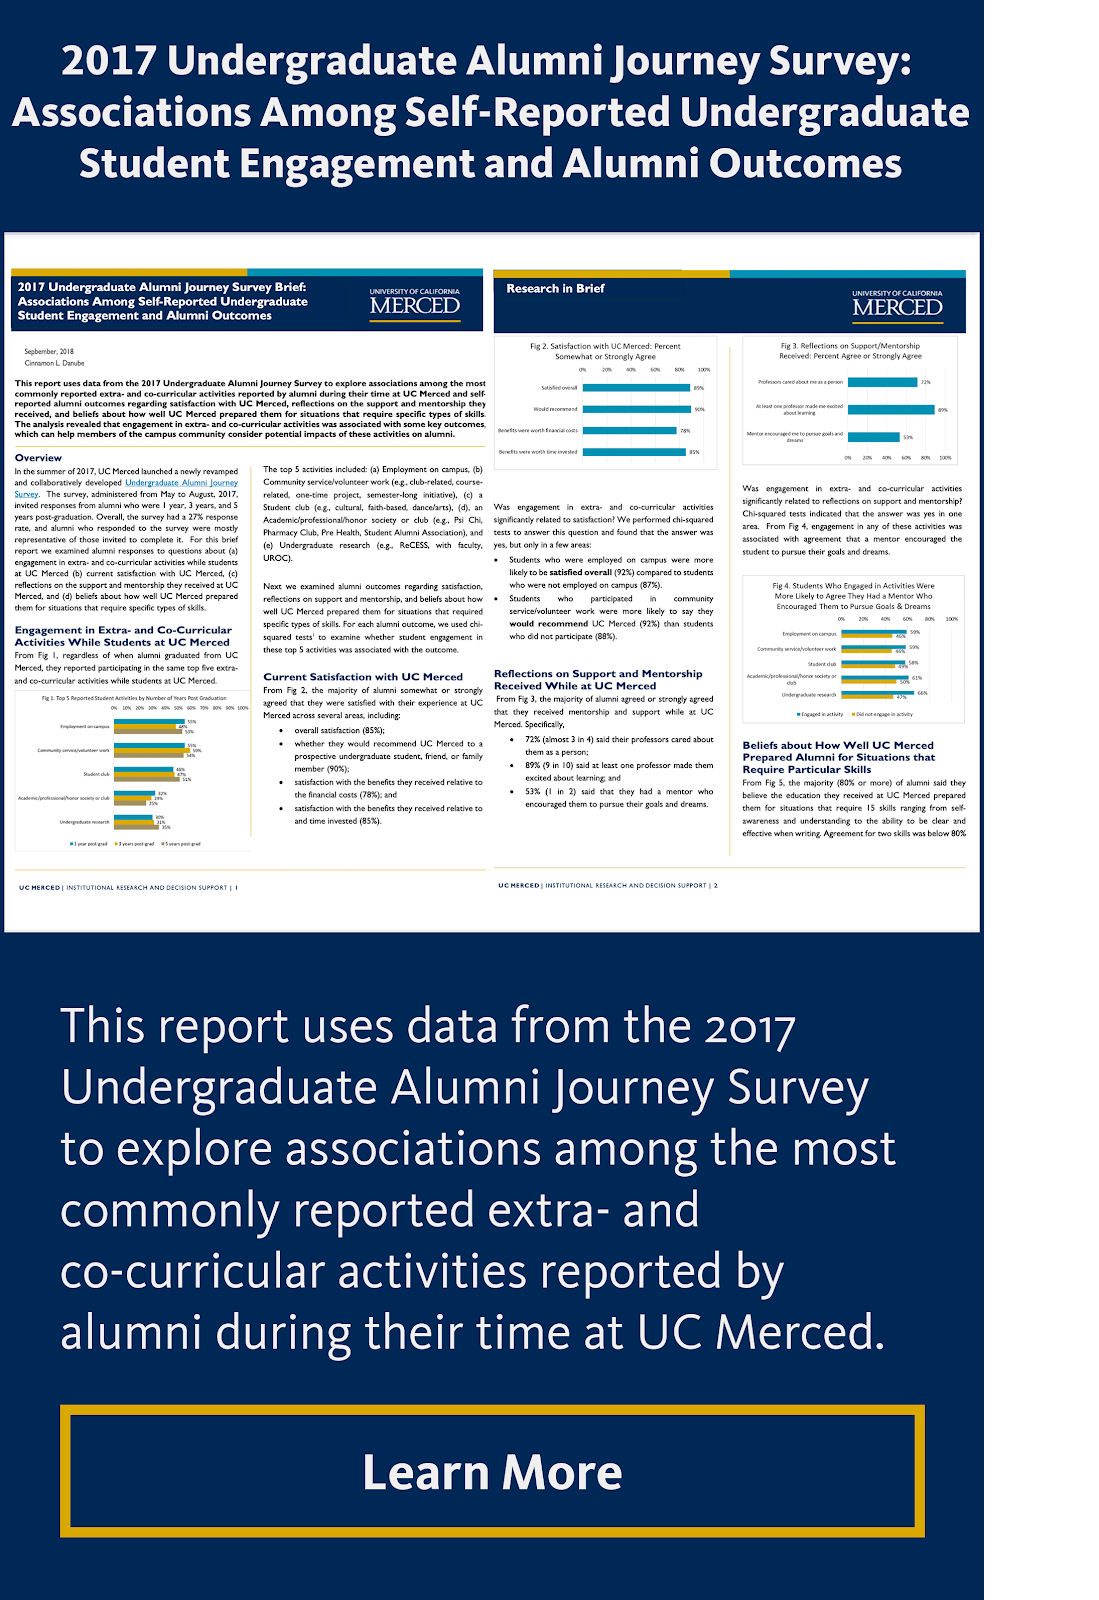 2017 Undergraduate Alumni Journey Survey: Associations Among Self-Reported Undergraduate Student Engagement and Alumni Outcomes